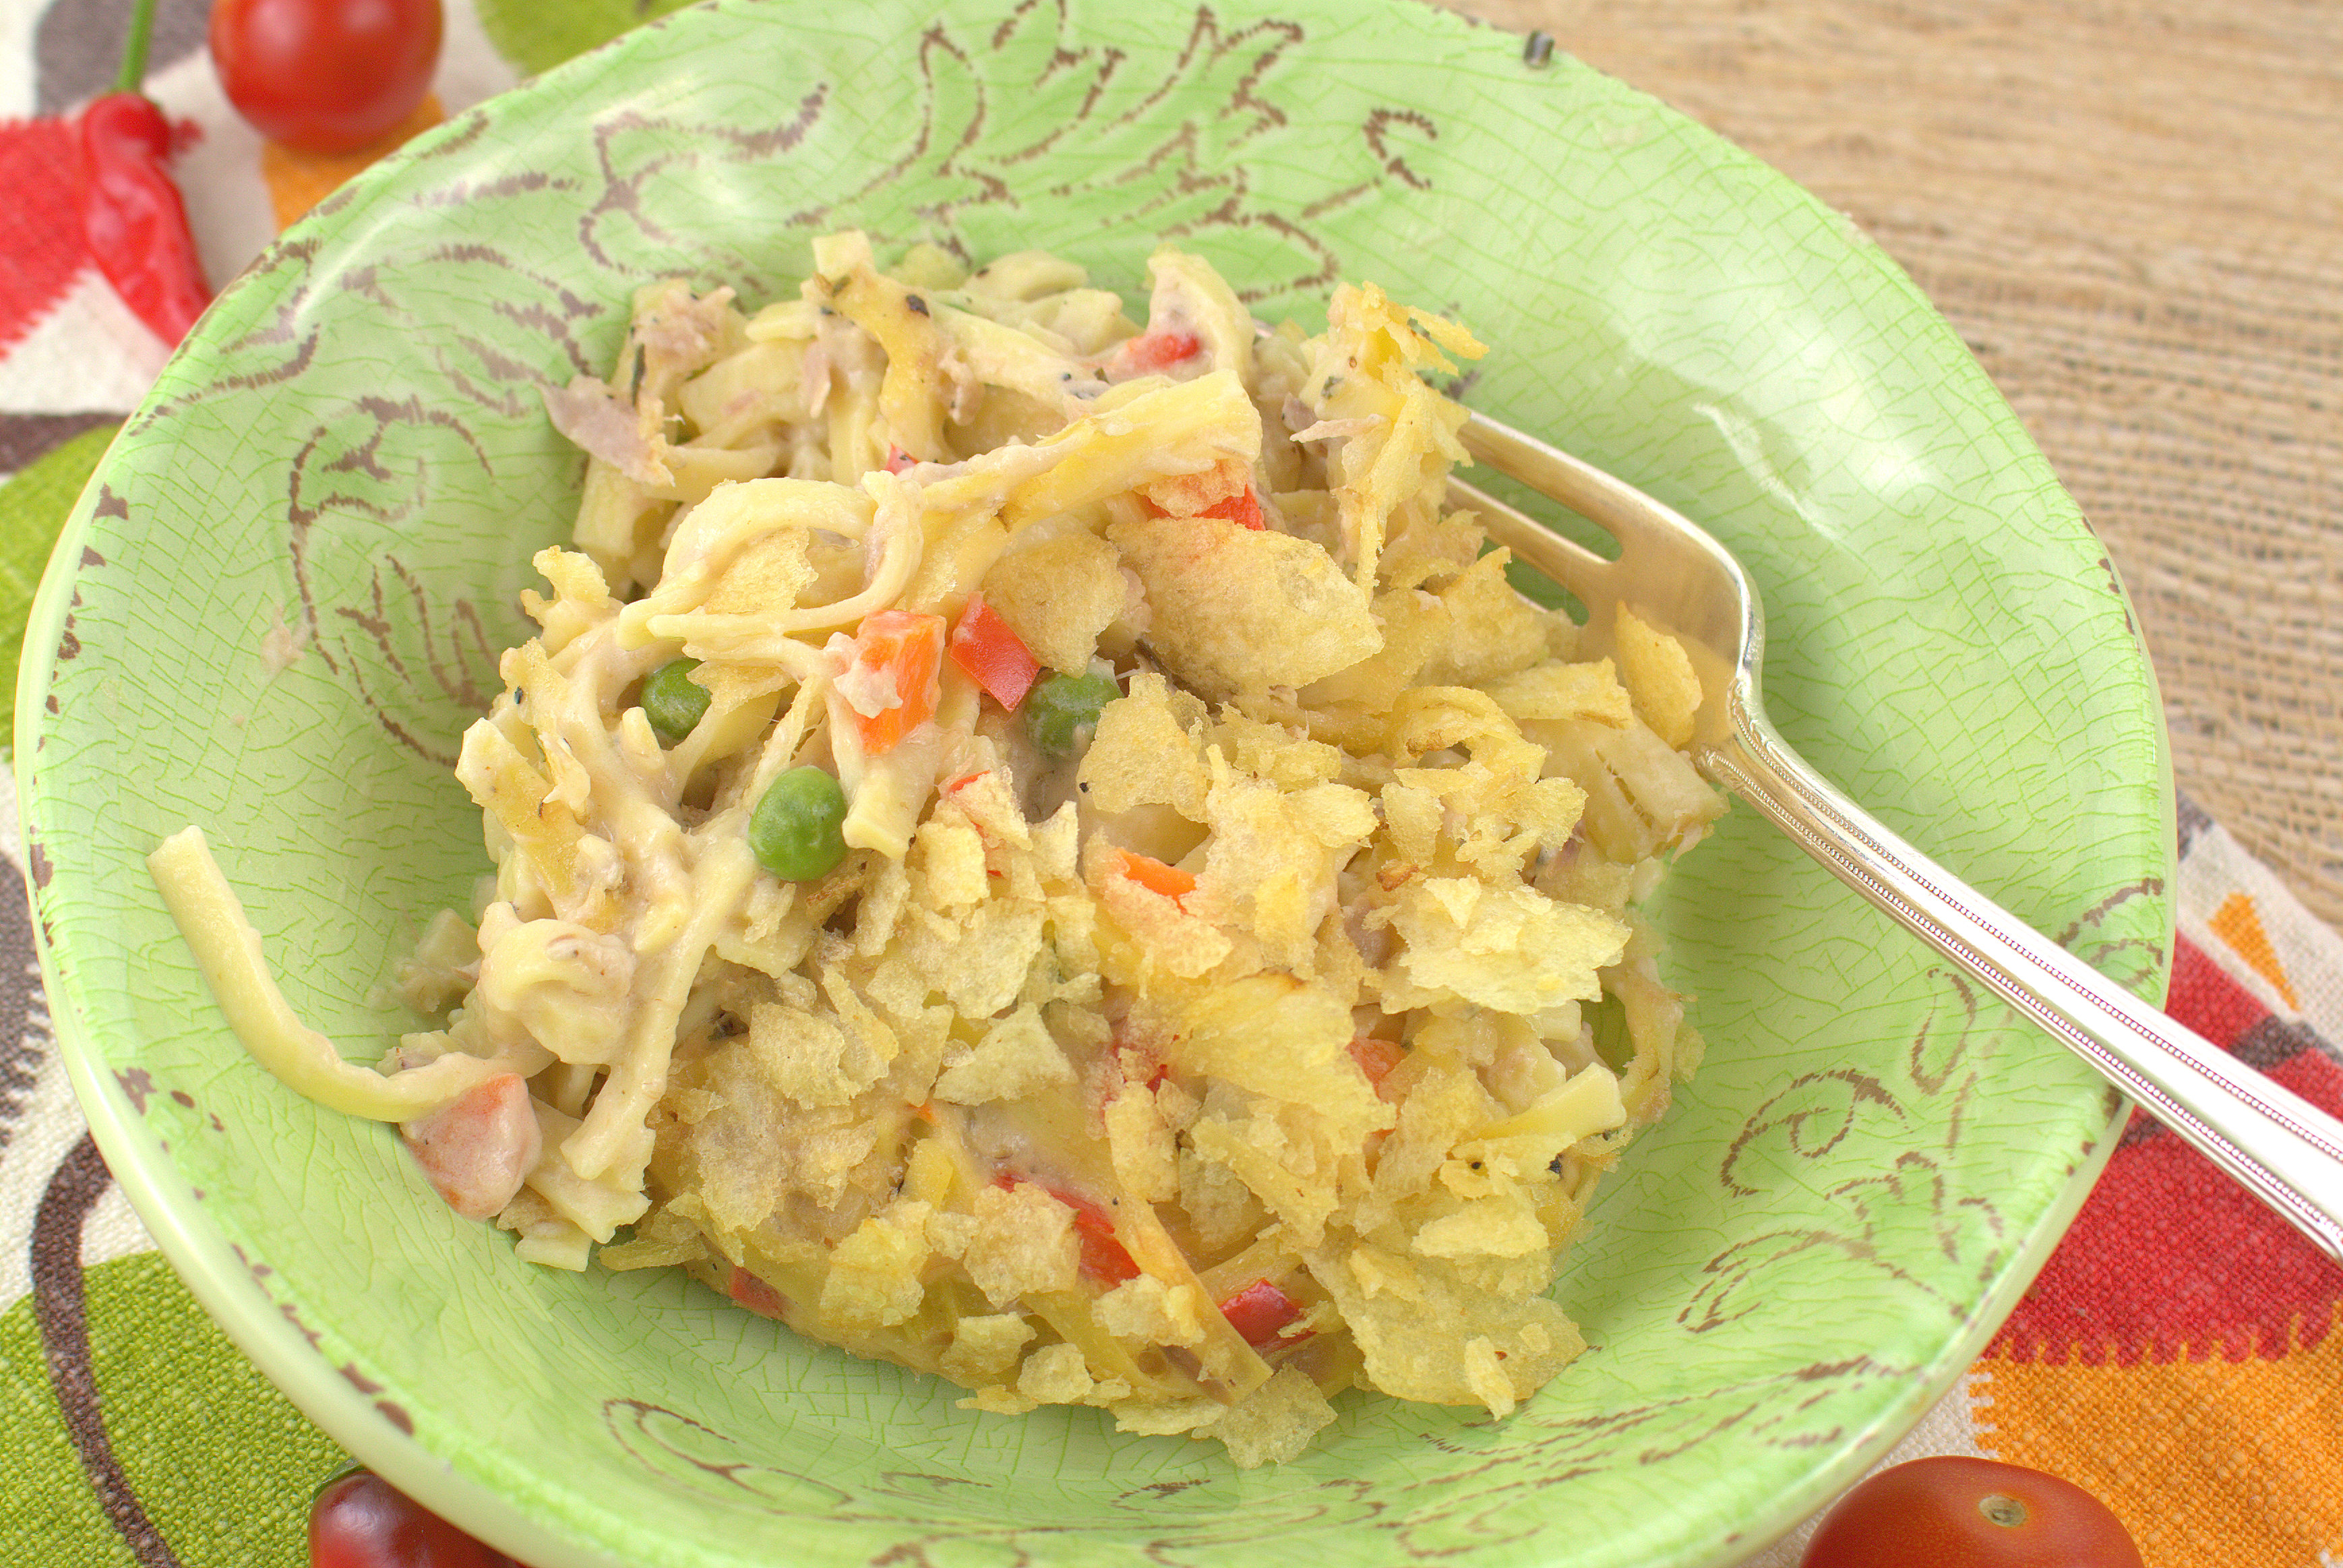 Tuna noodle casserole for Tuna fish casserole recipe